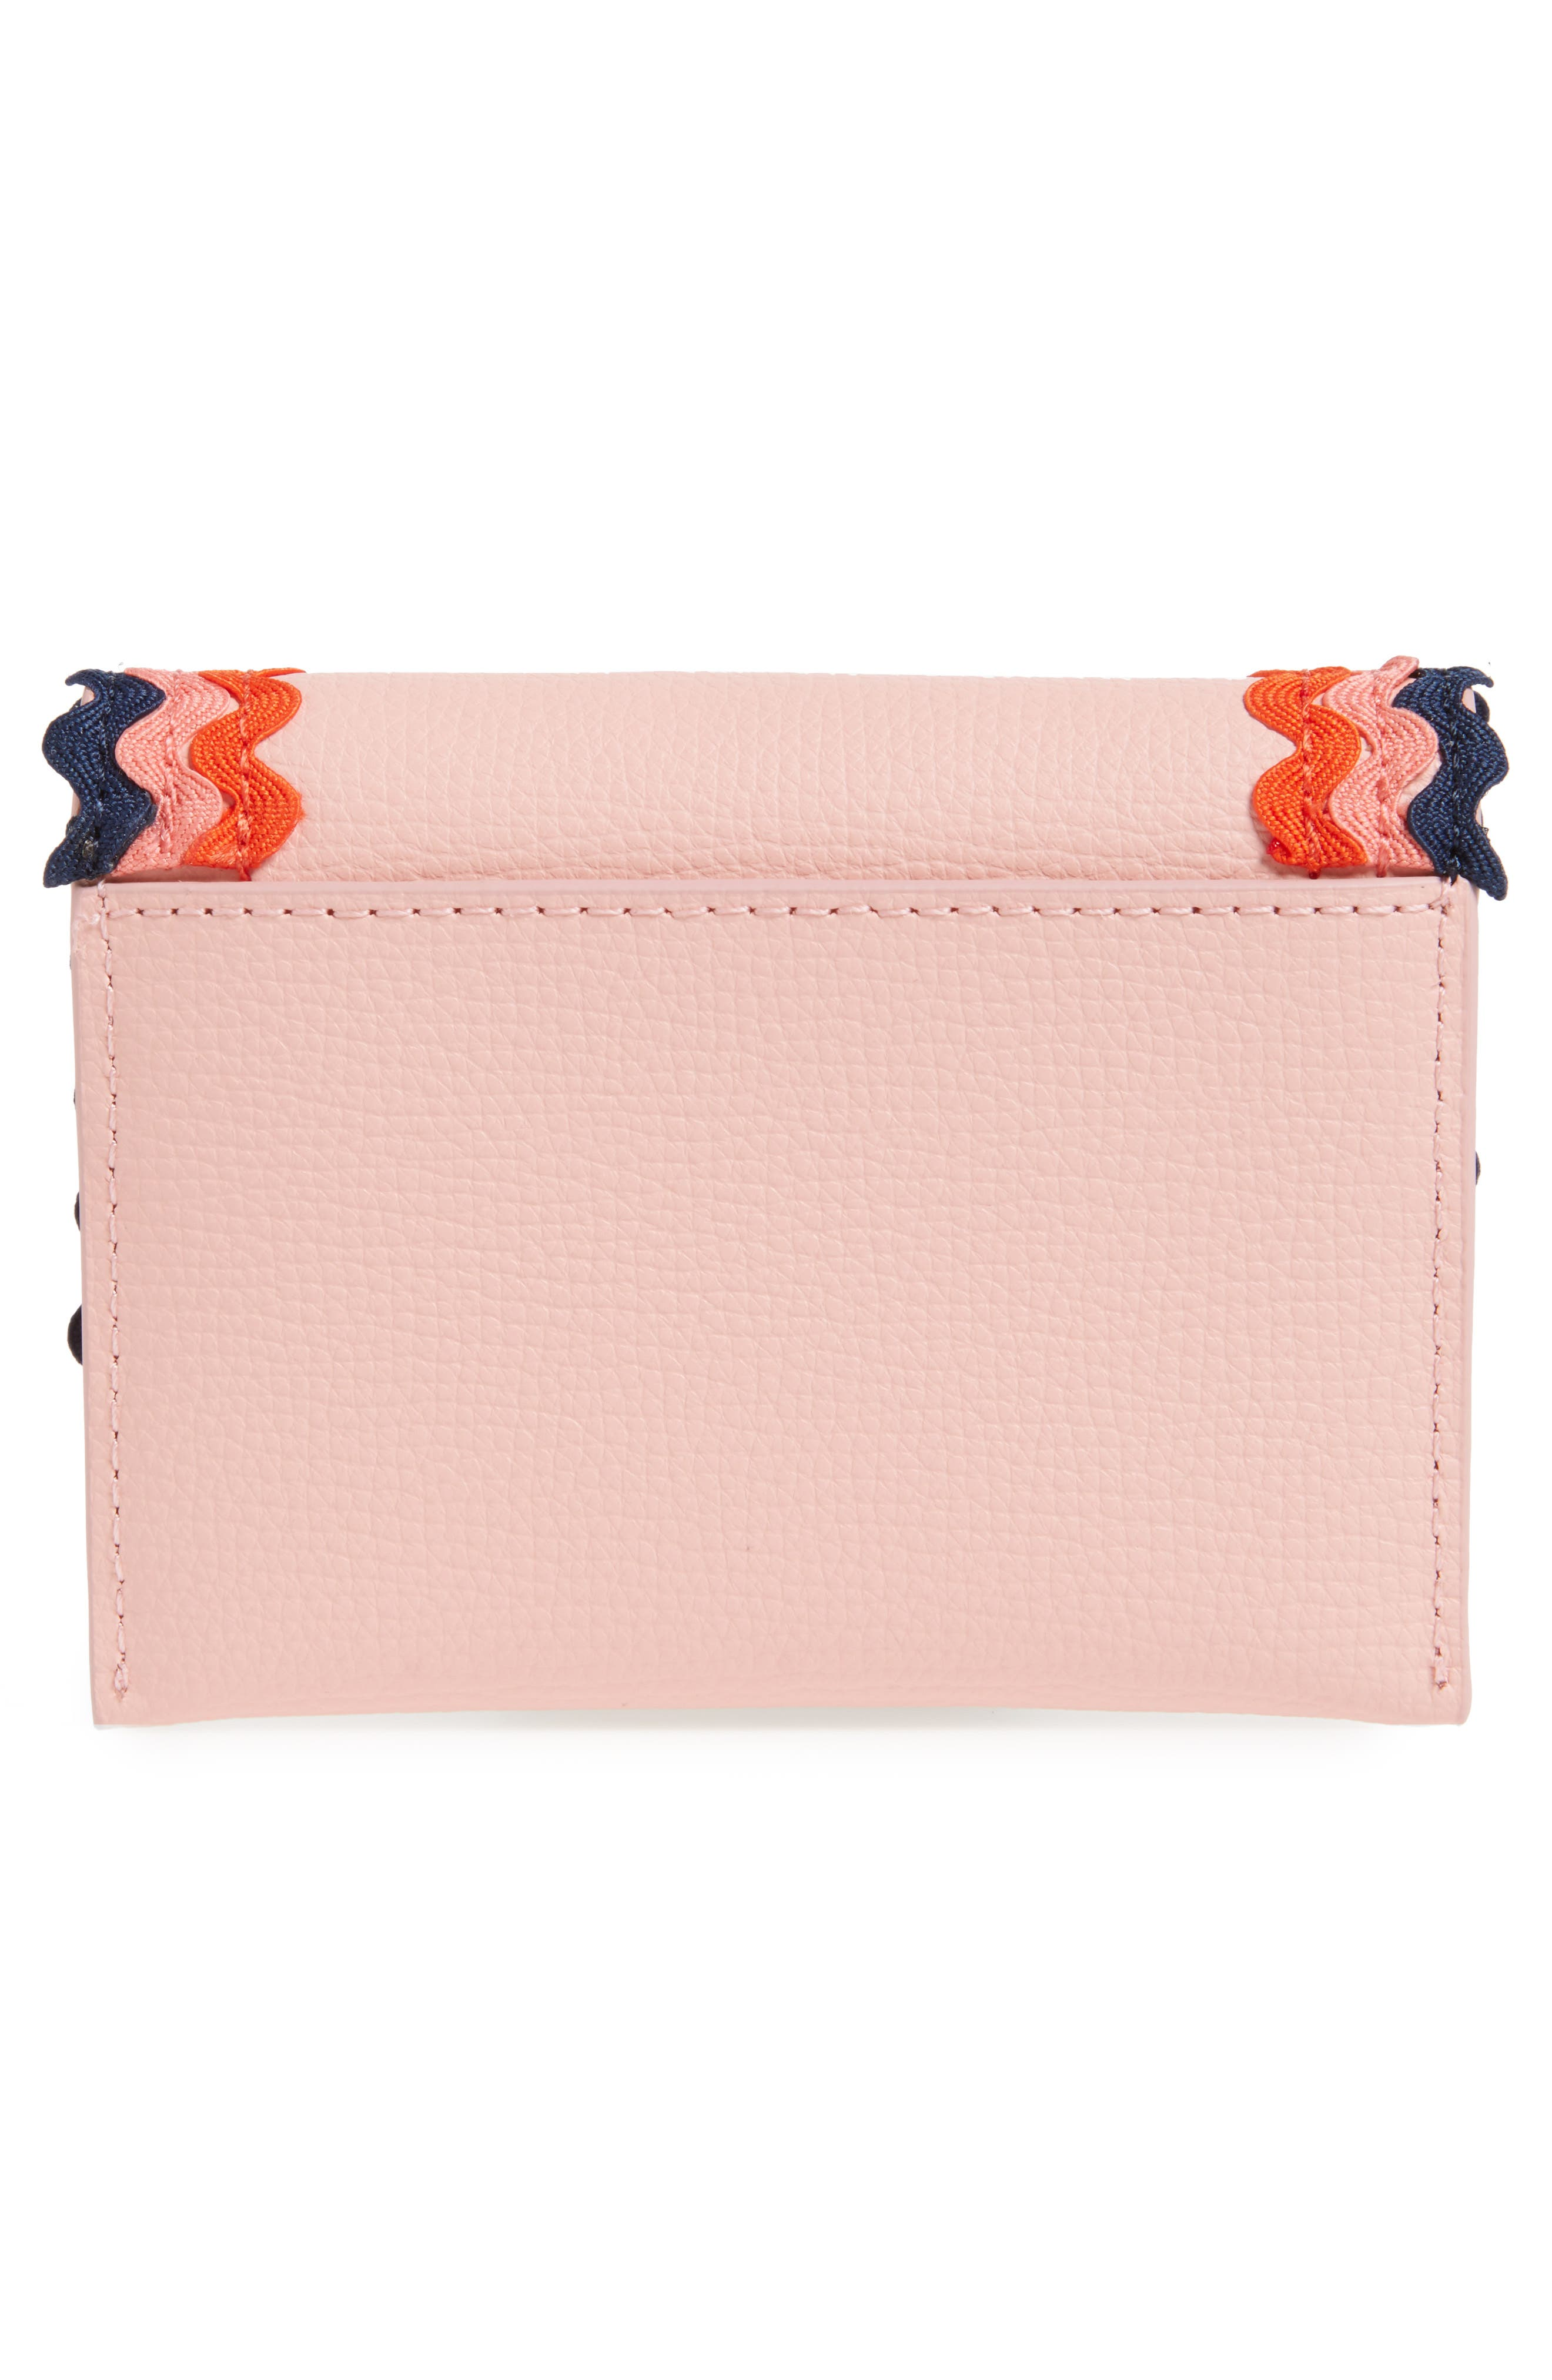 Essential Leather Wallet,                             Alternate thumbnail 4, color,                             Ballet/ Multi